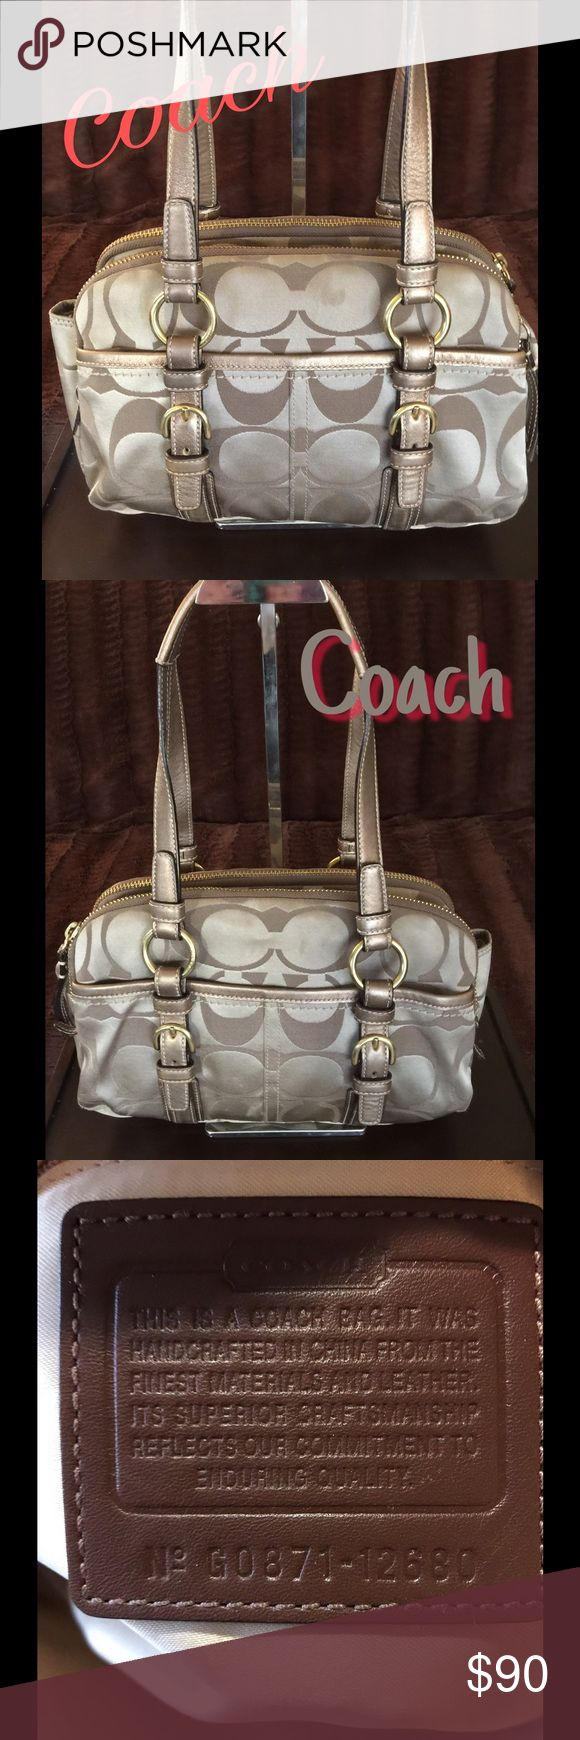 Coach Satchel No Trades Soho Signature C Sateen Bag in Gold/Tan. Features 2 Straps, Double zippers, 3 compartments and 2 outside pockets. Pre-loved. Shows minor signs of wear which are mostly a few soil spots. I have not tried to clean, but it would be an easy job.  The lining is tan satin. Very good condition with a couple of little spots.  Overall, this bag is an 8 out of 10.  💯% Authentic Coach Bags Satchels